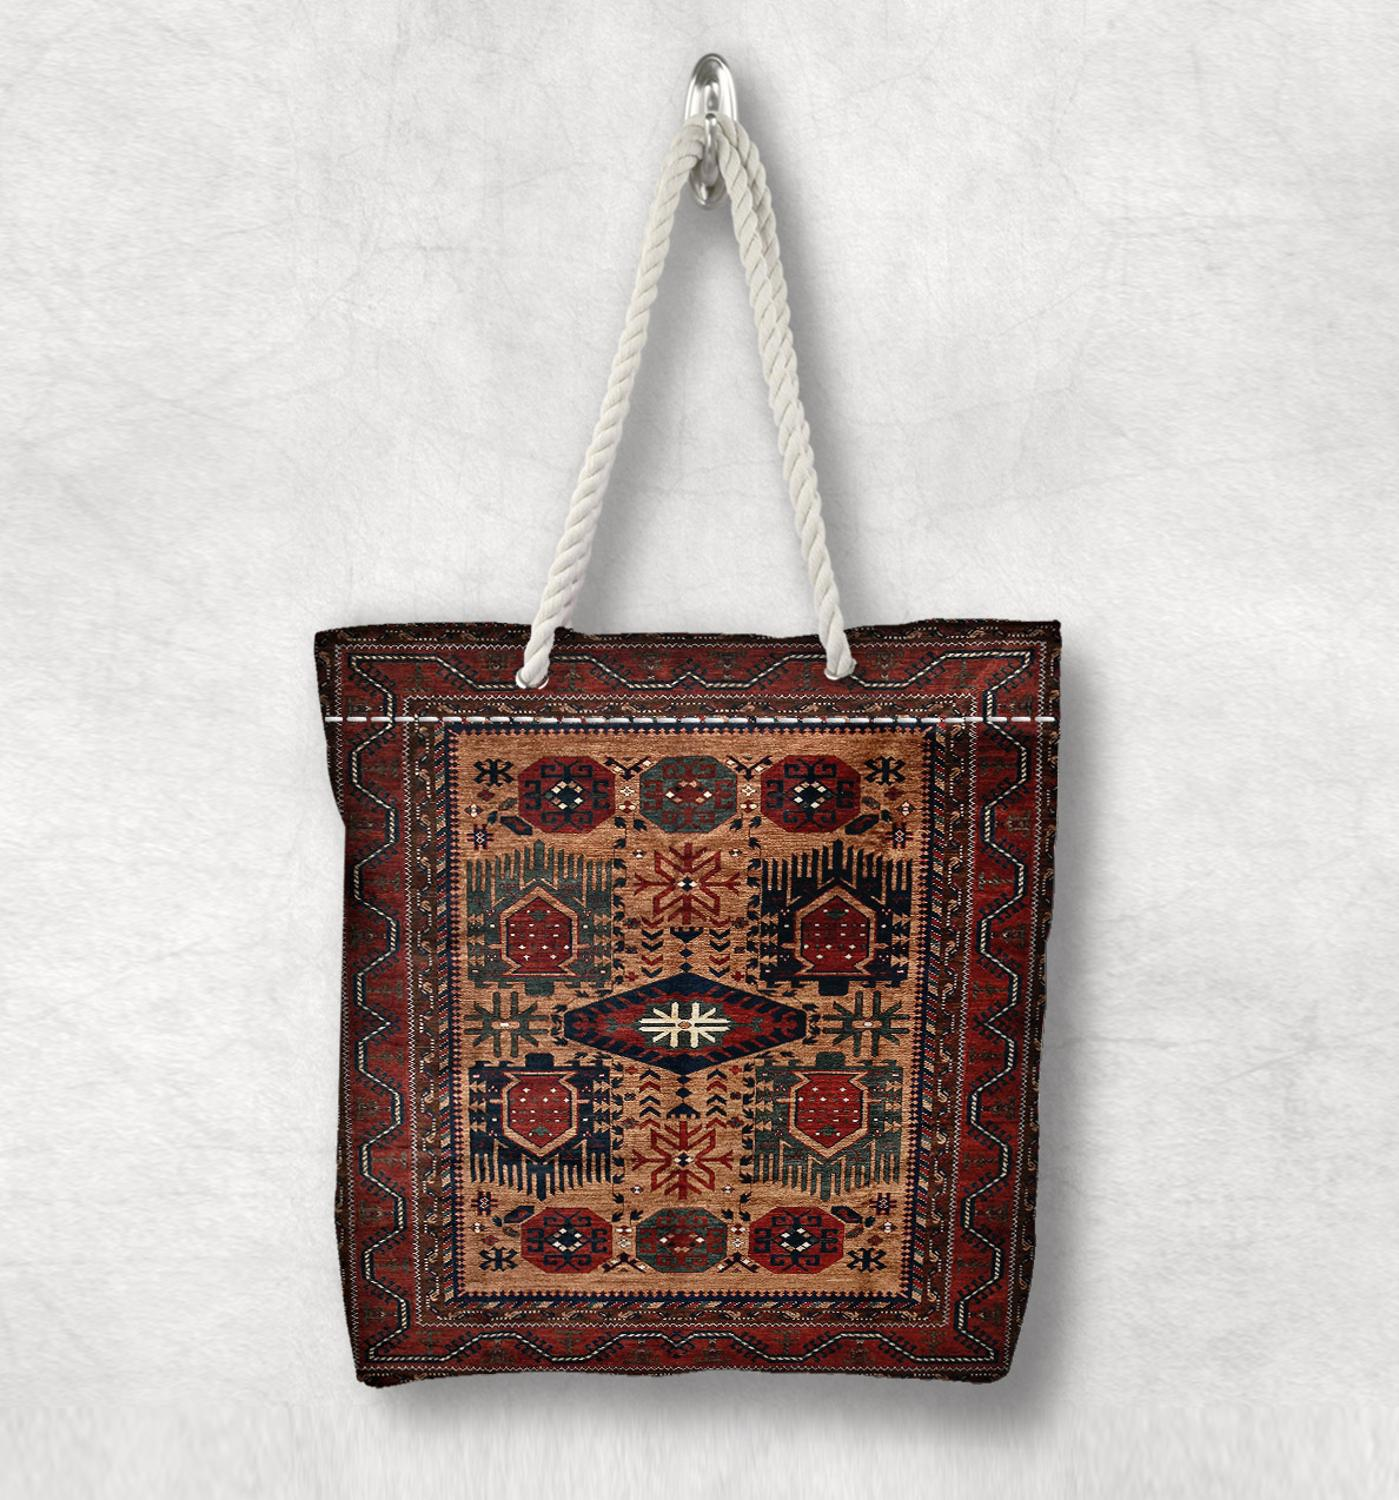 Else Brown Vintage Anatolia Antique Kilim Design White Rope Handle Canvas Bag Cotton Canvas Zippered Tote Bag Shoulder Bag